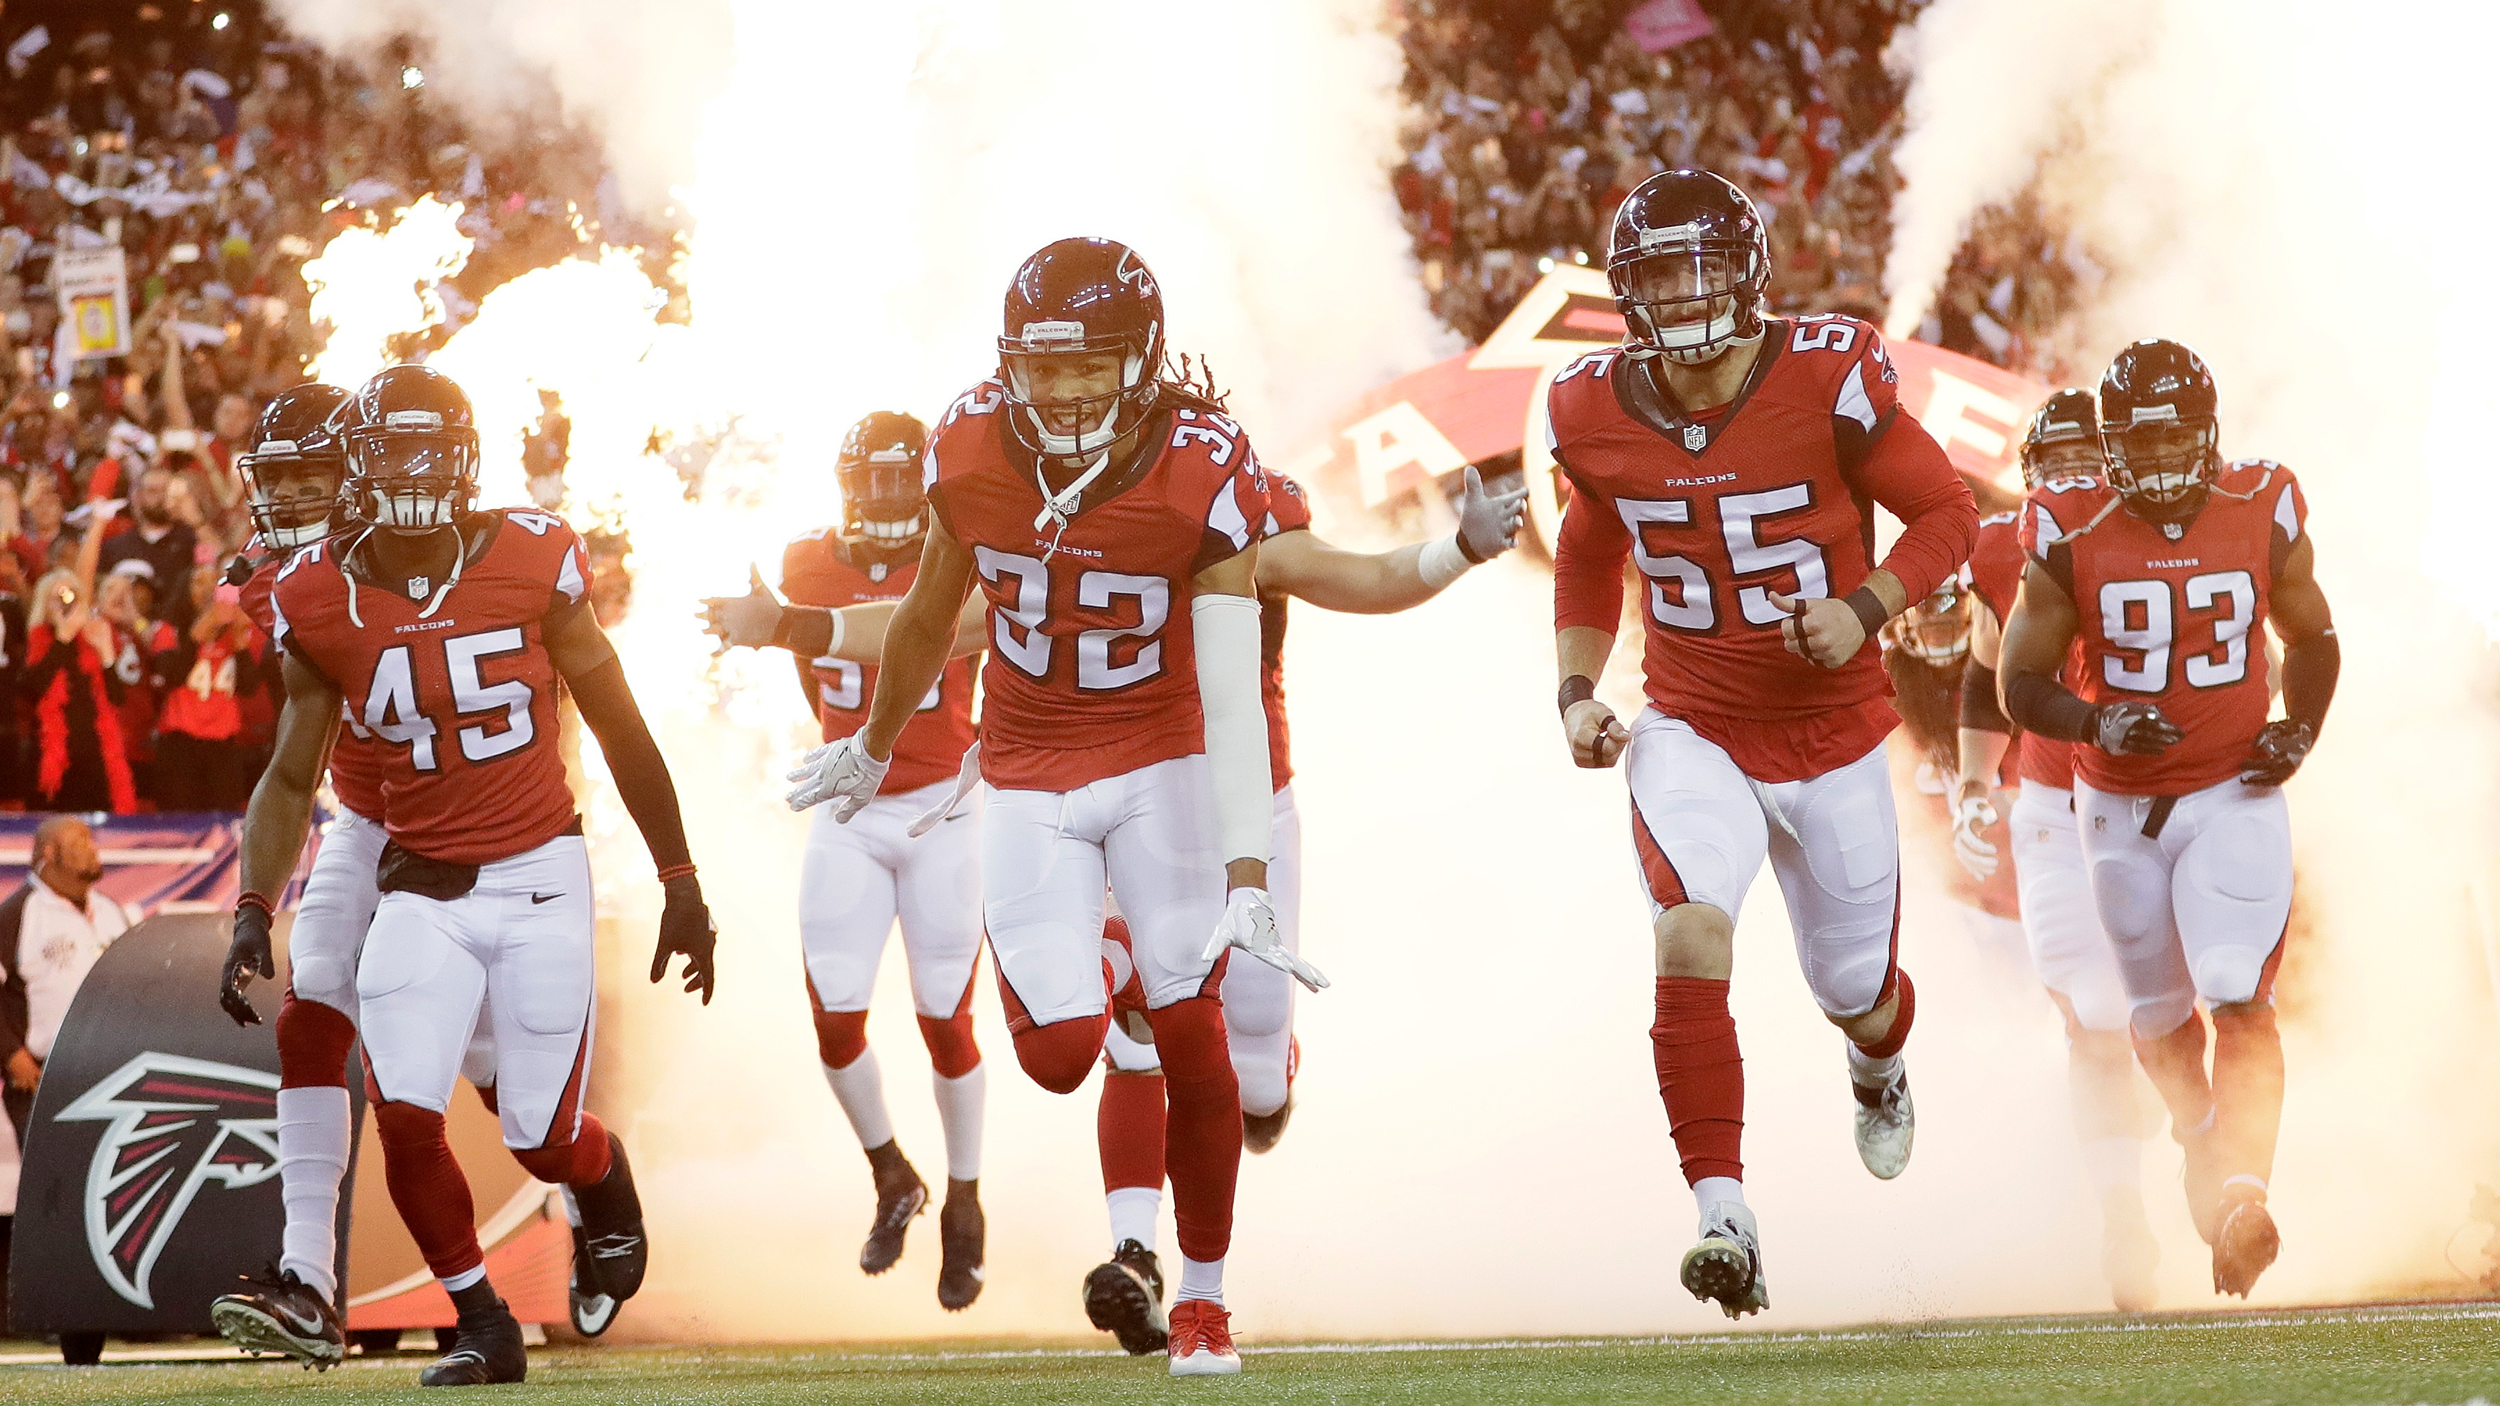 fb56d06c There's never been a better year for the Atlanta Falcons to 'Rise Up'